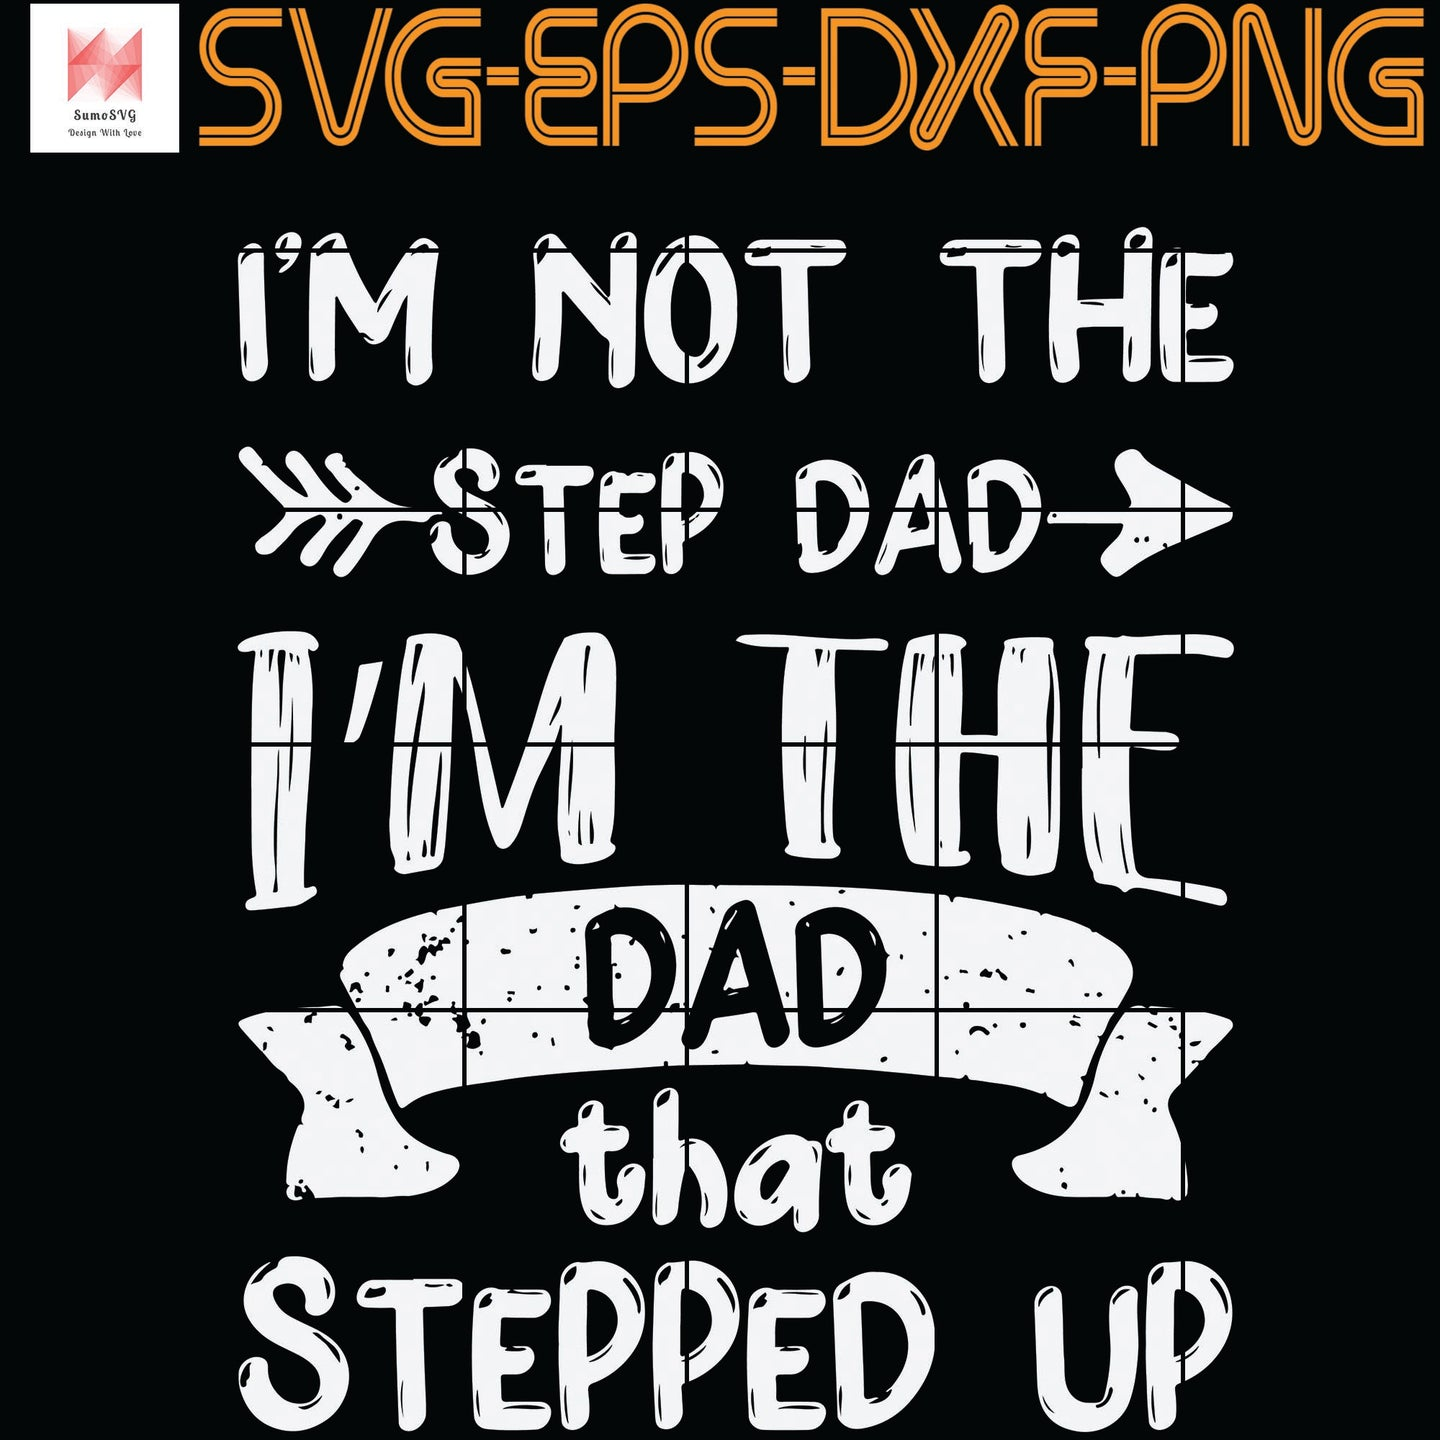 I'm Not The Stepdad I'm The Dad That Stepped Up SVG, PNG, EPS, DXF, Digital Download